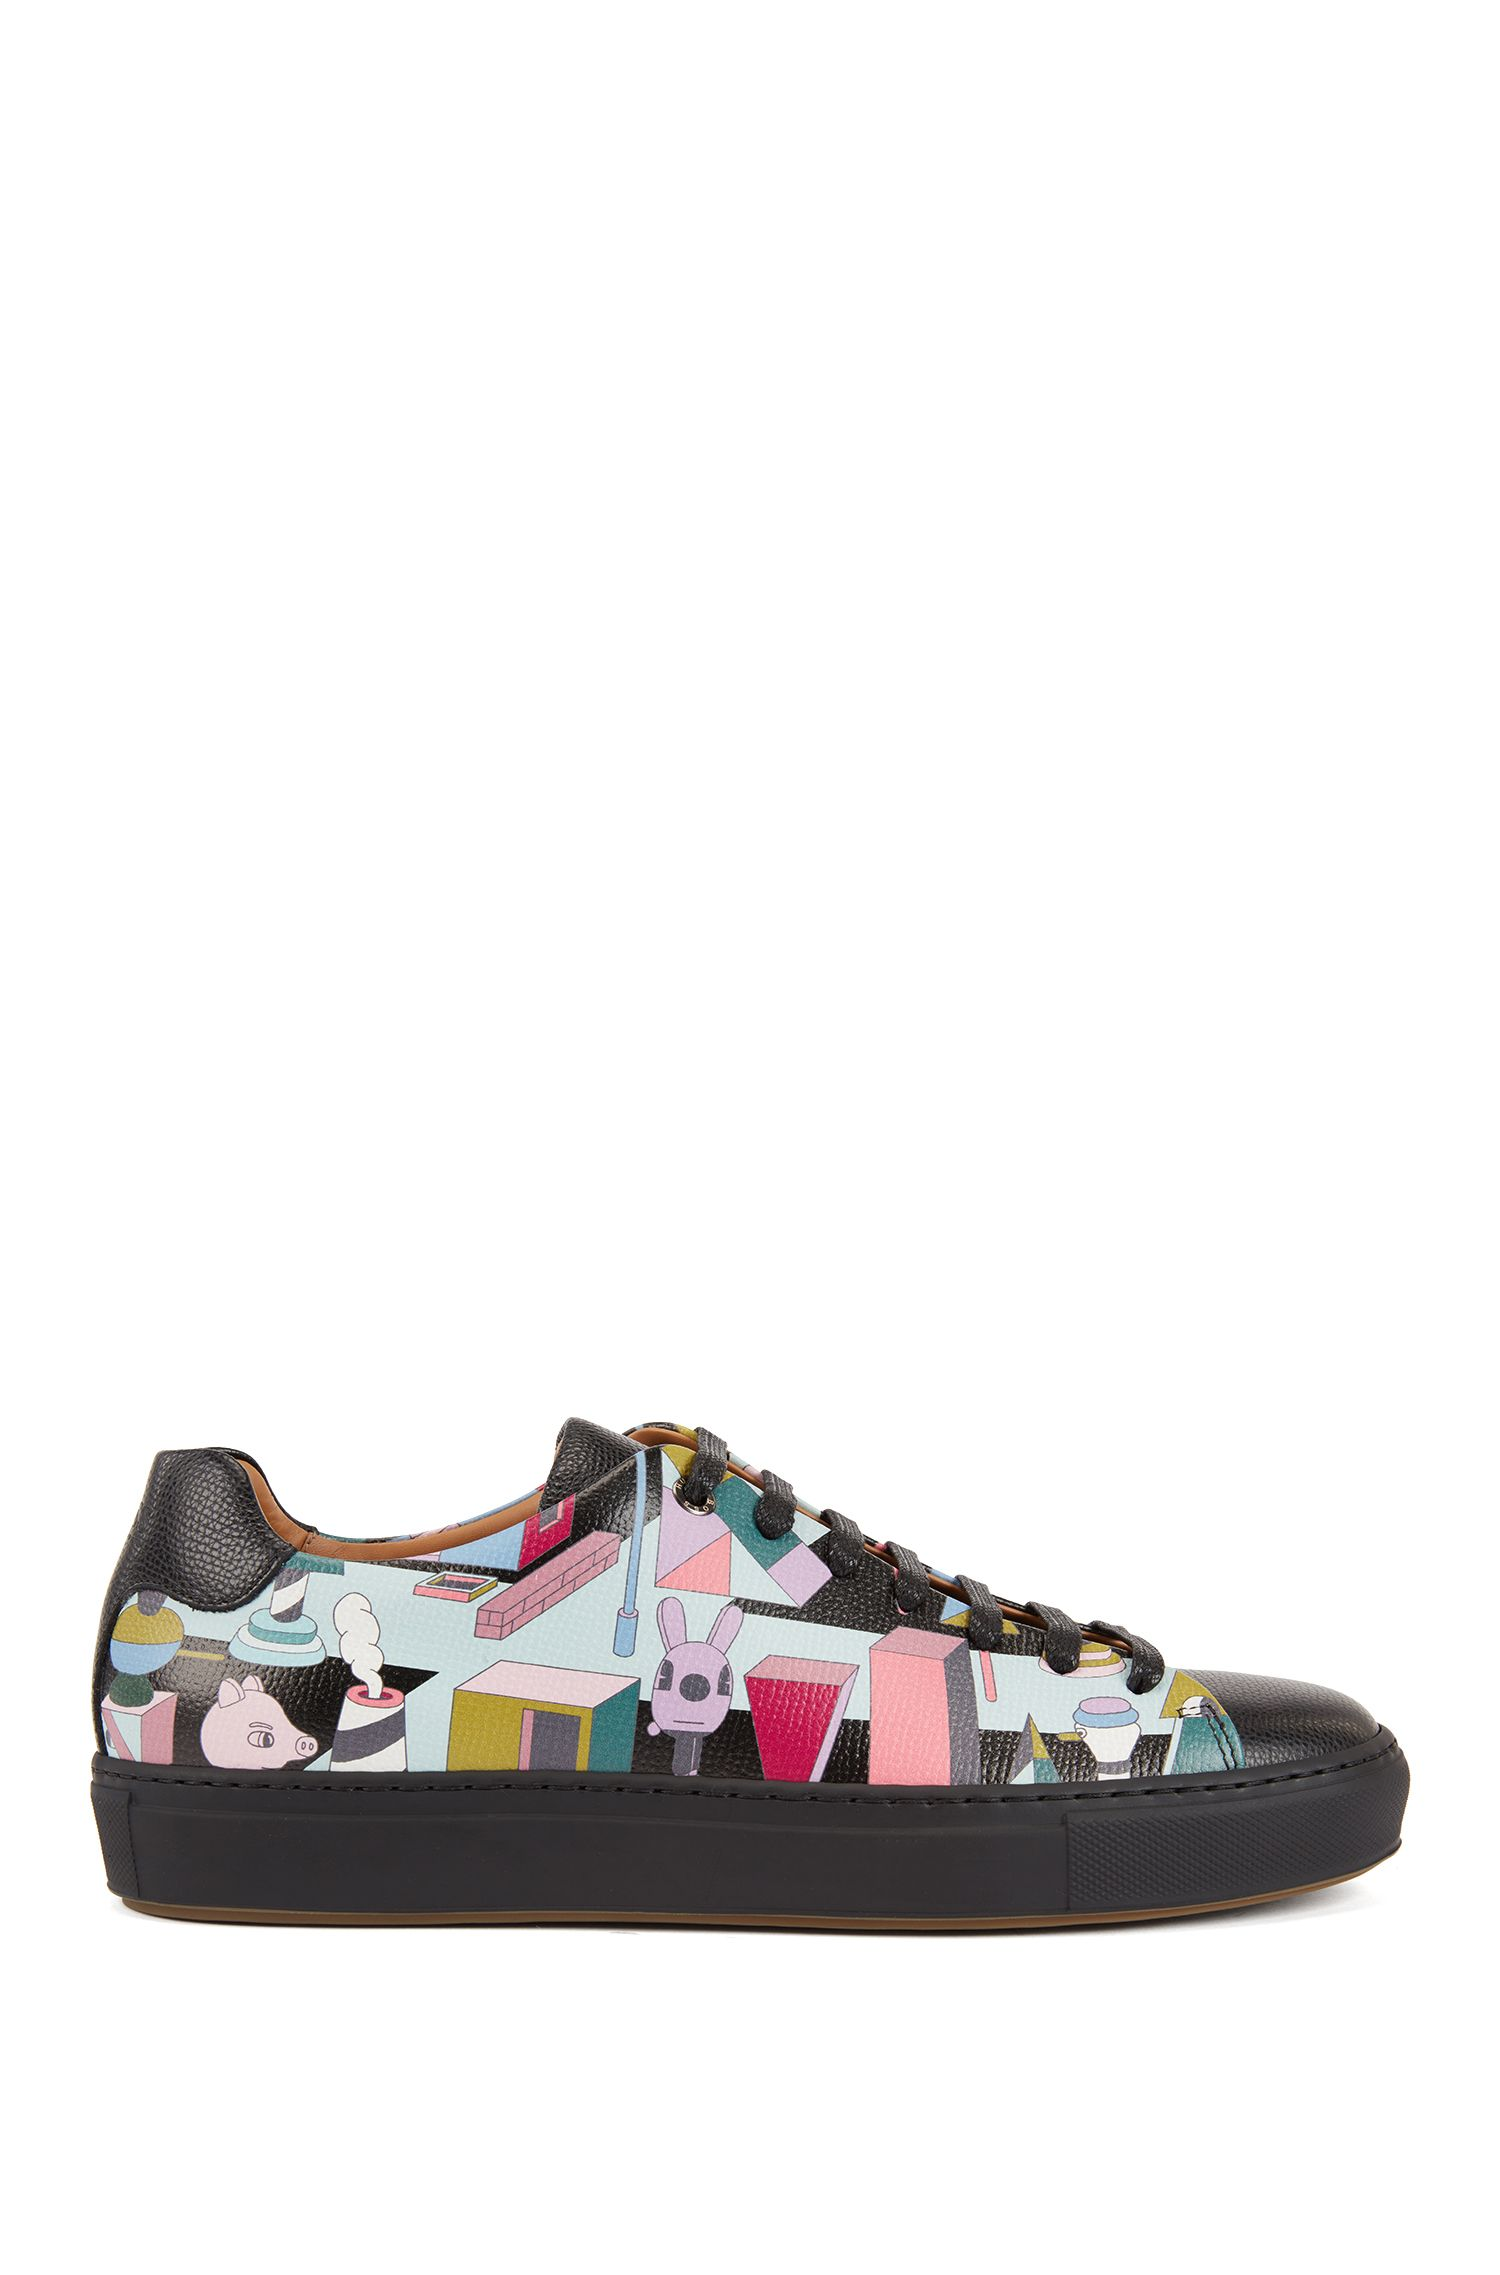 Limited-edition leather sneakers with colorful Jeremyville design, Patterned